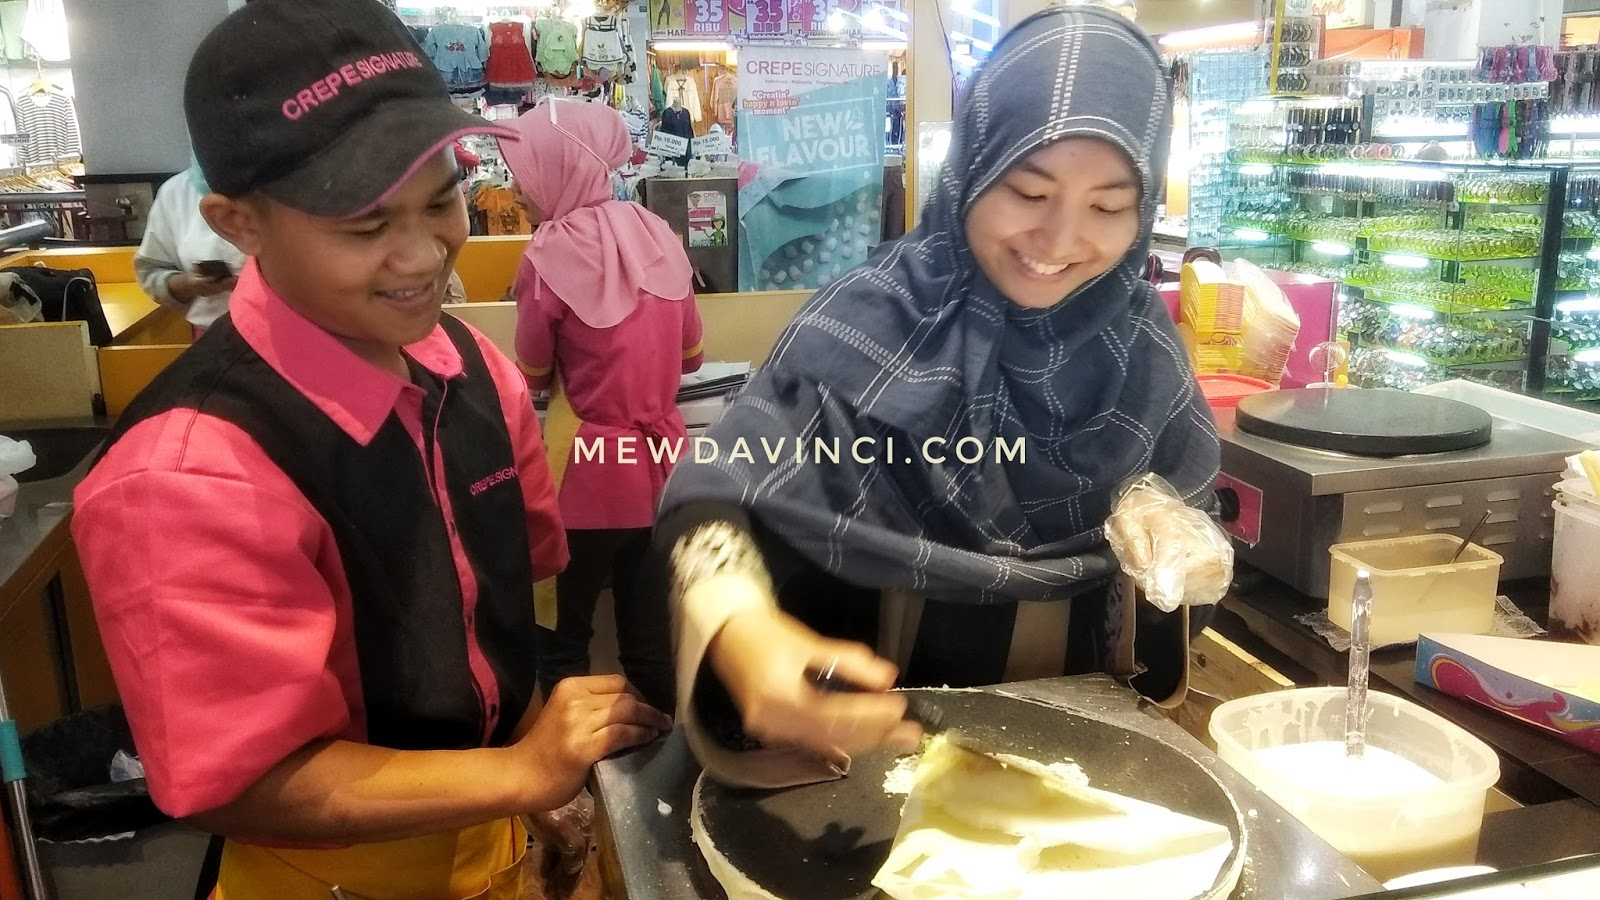 cooking class, crepe in the making